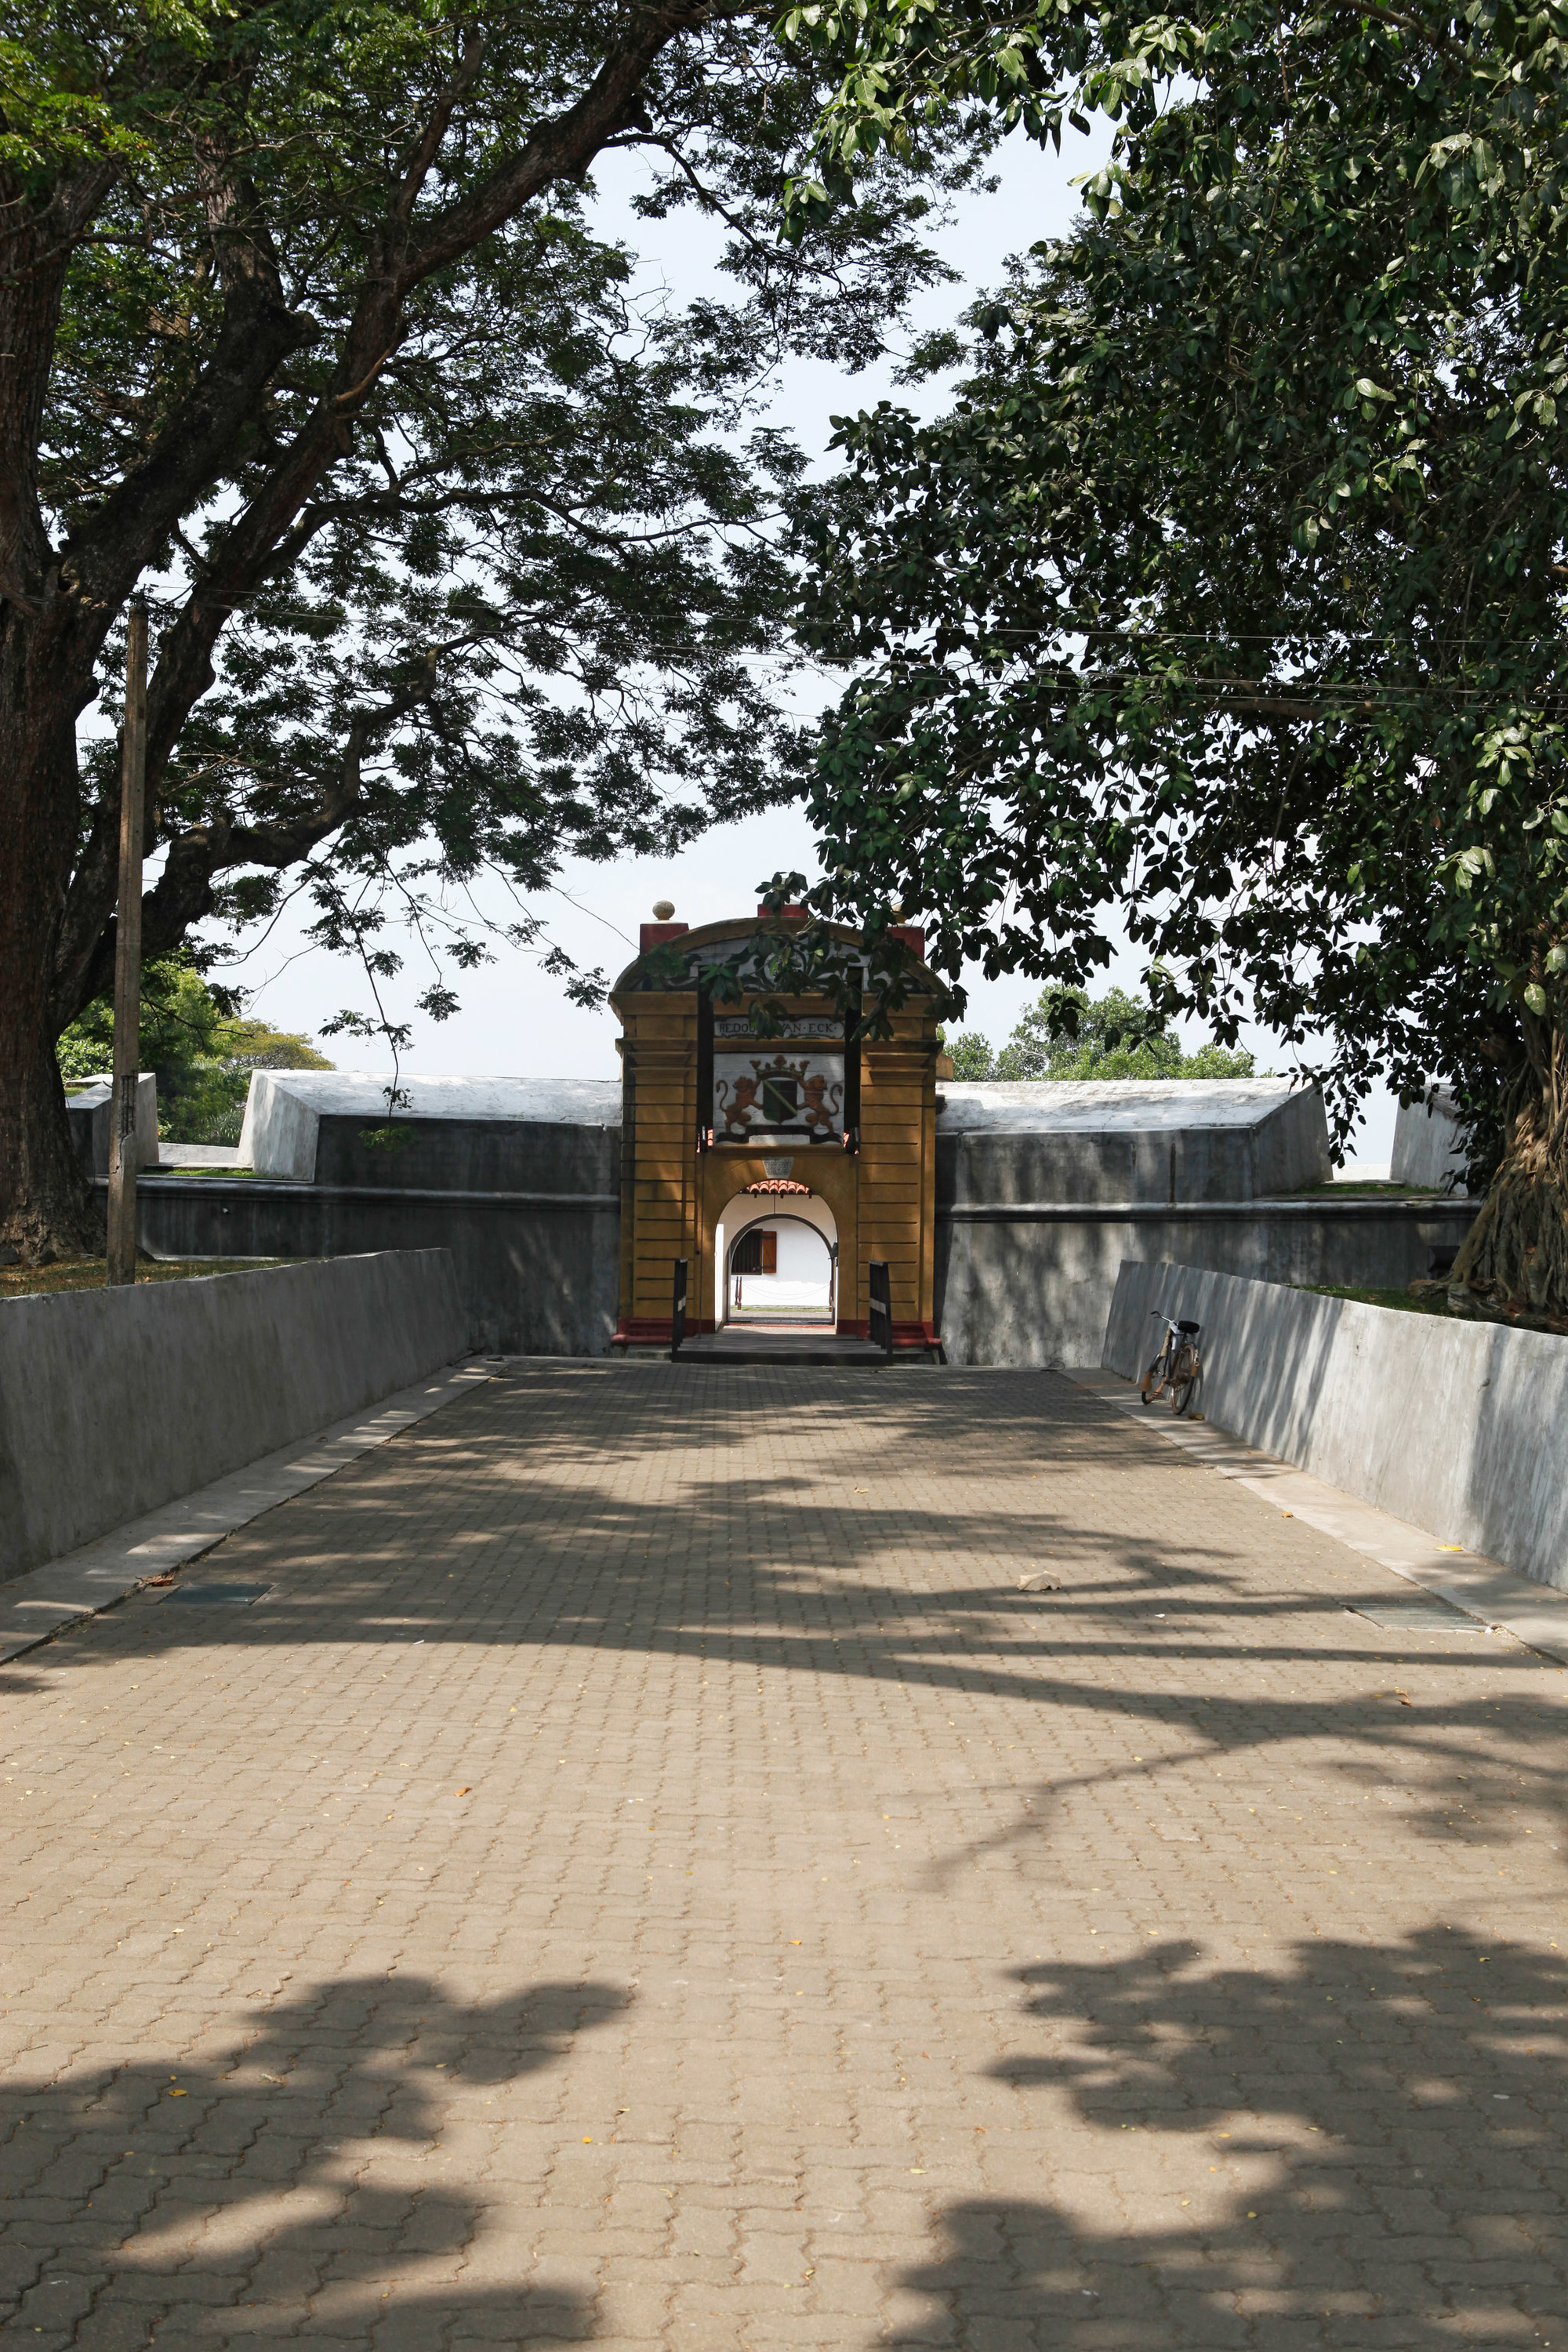 Star Fort is a historical building in Sri Lanka